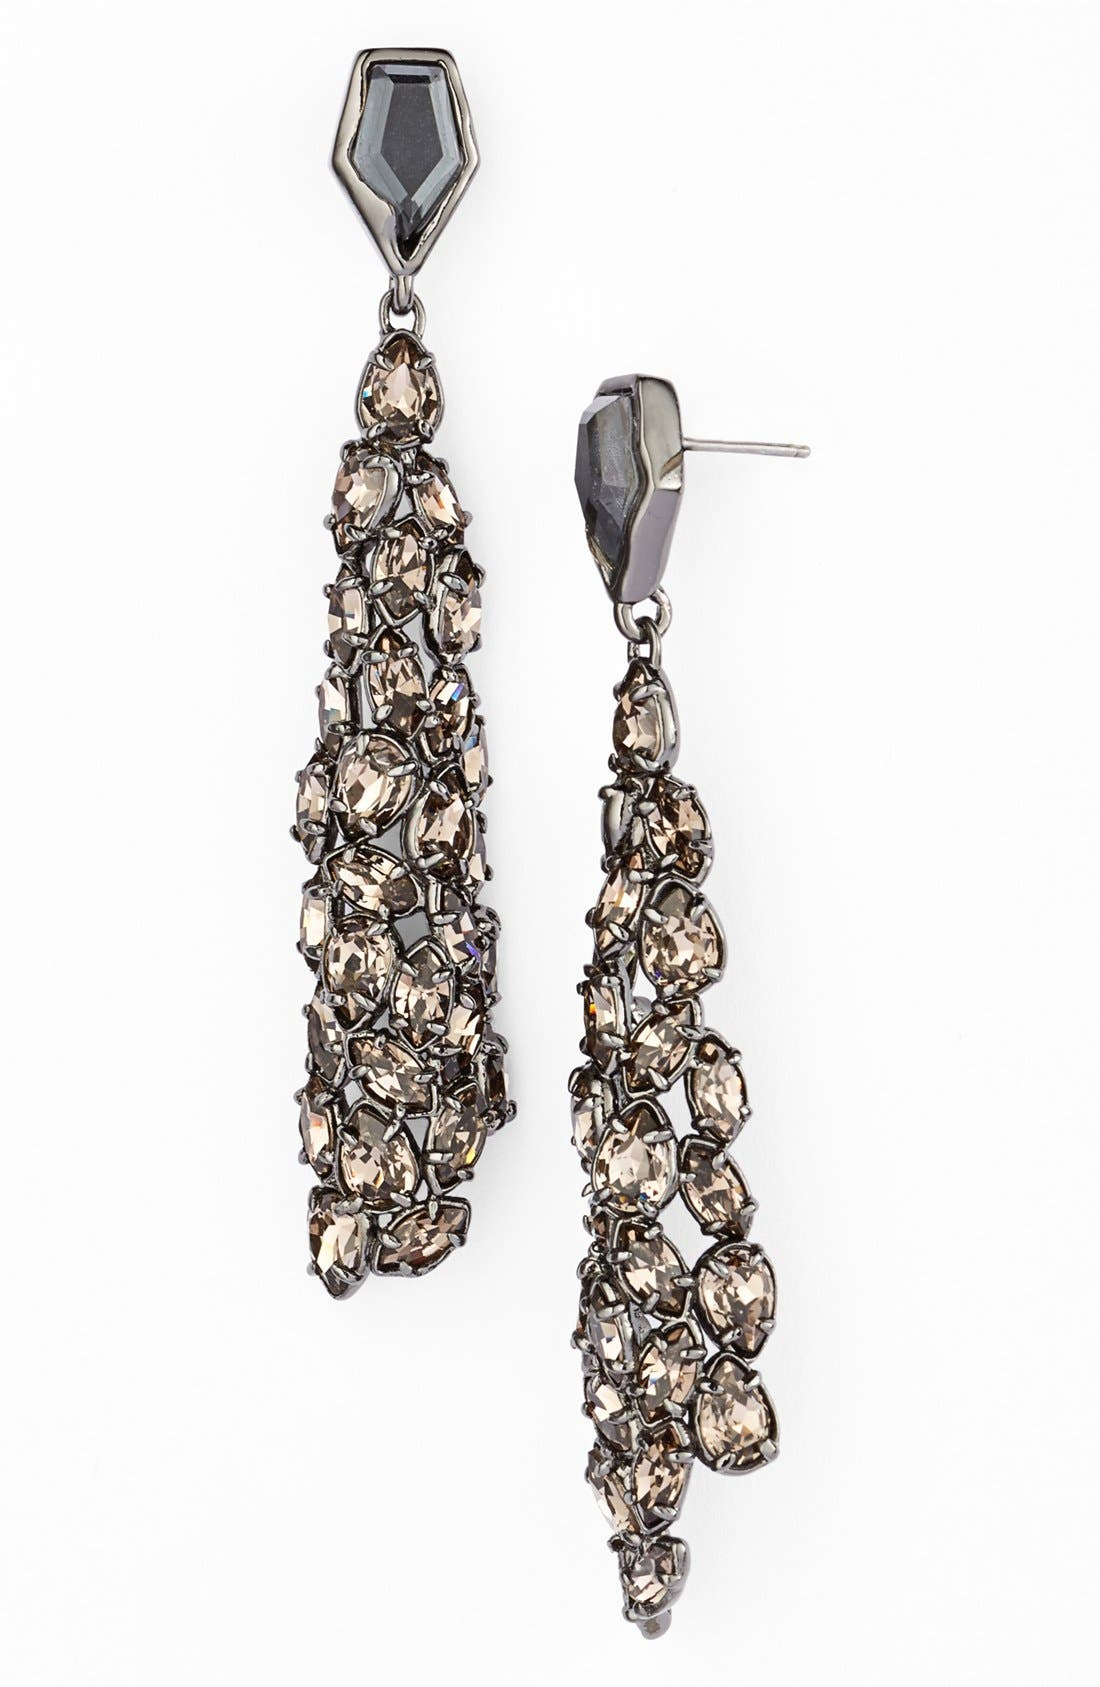 Alternate Image 1 Selected - Alexis Bittar 'Miss Havisham' Linear Earrings